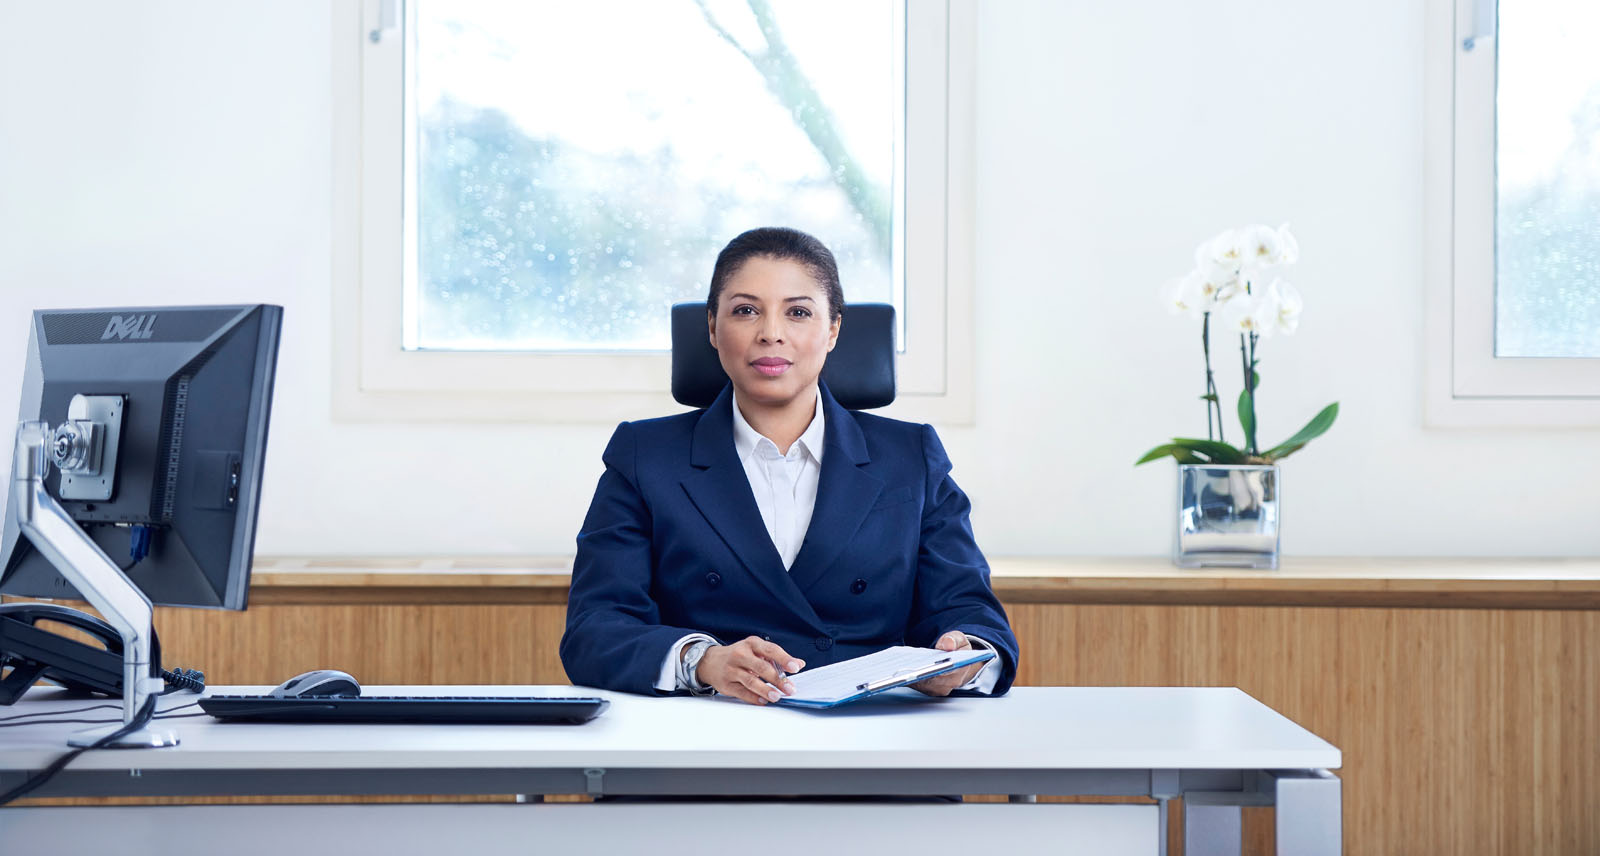 Consultant in her office